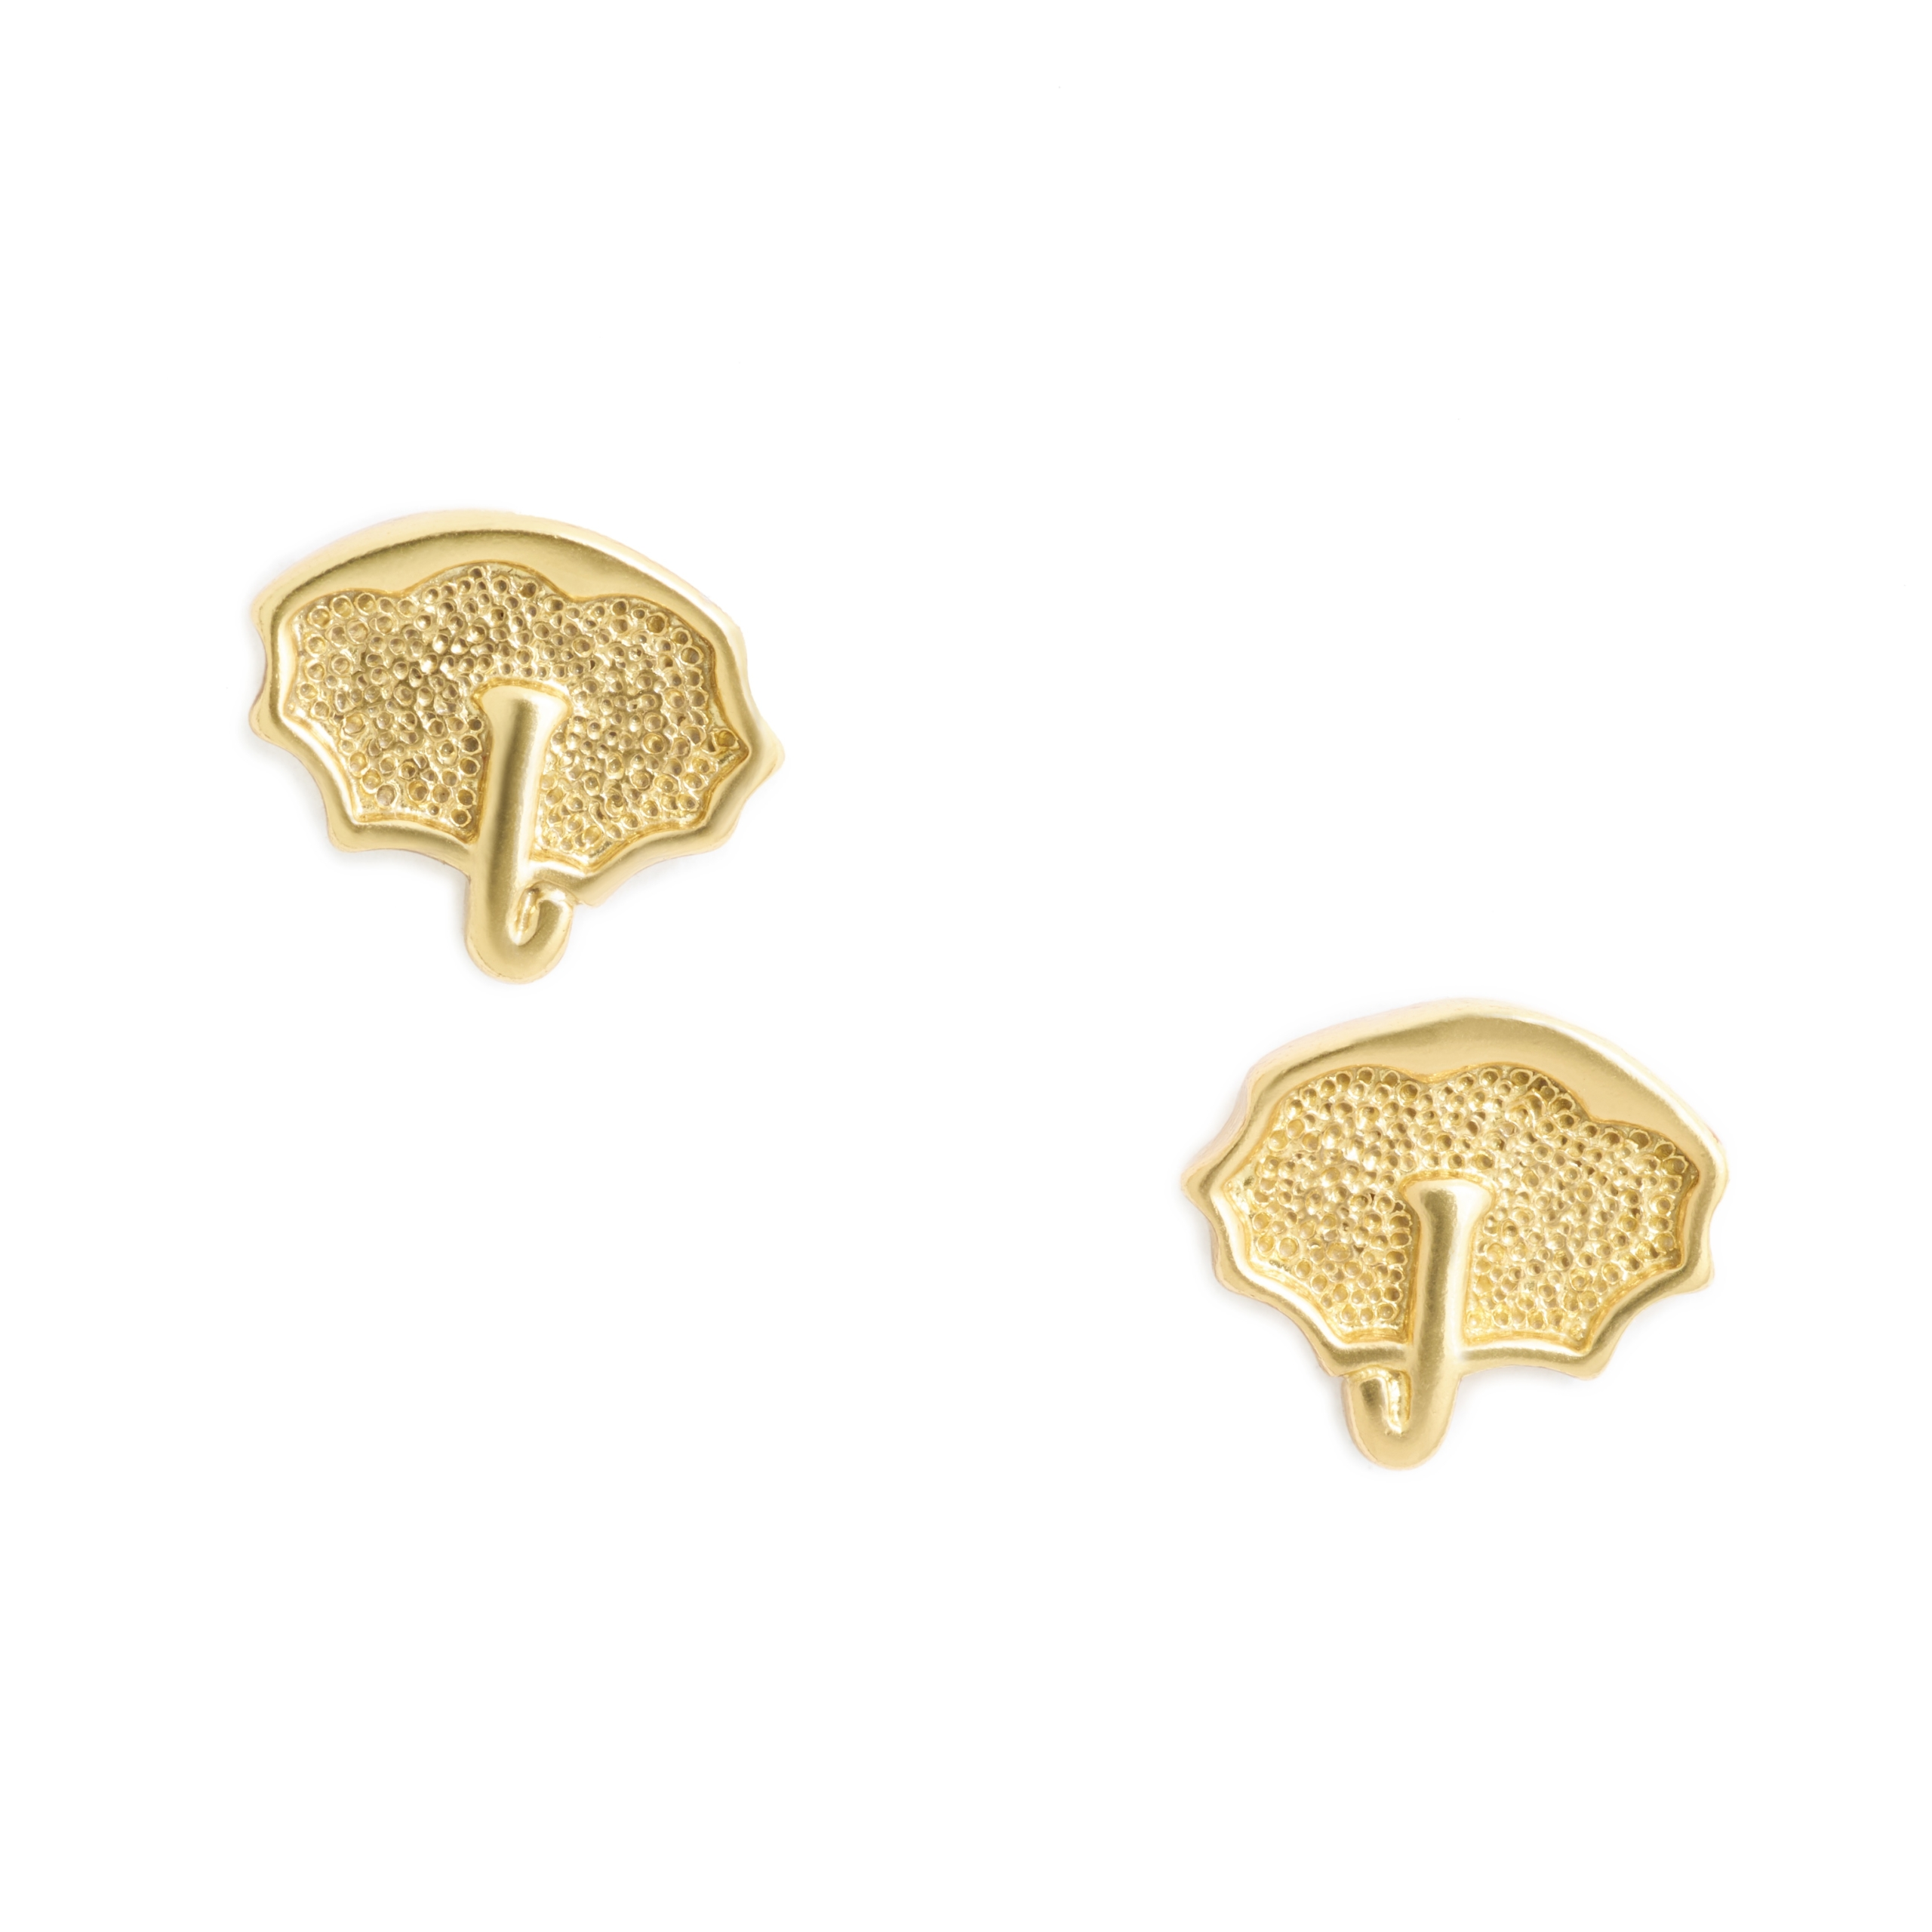 Umbrella Earrings, Yellow Gold Plated